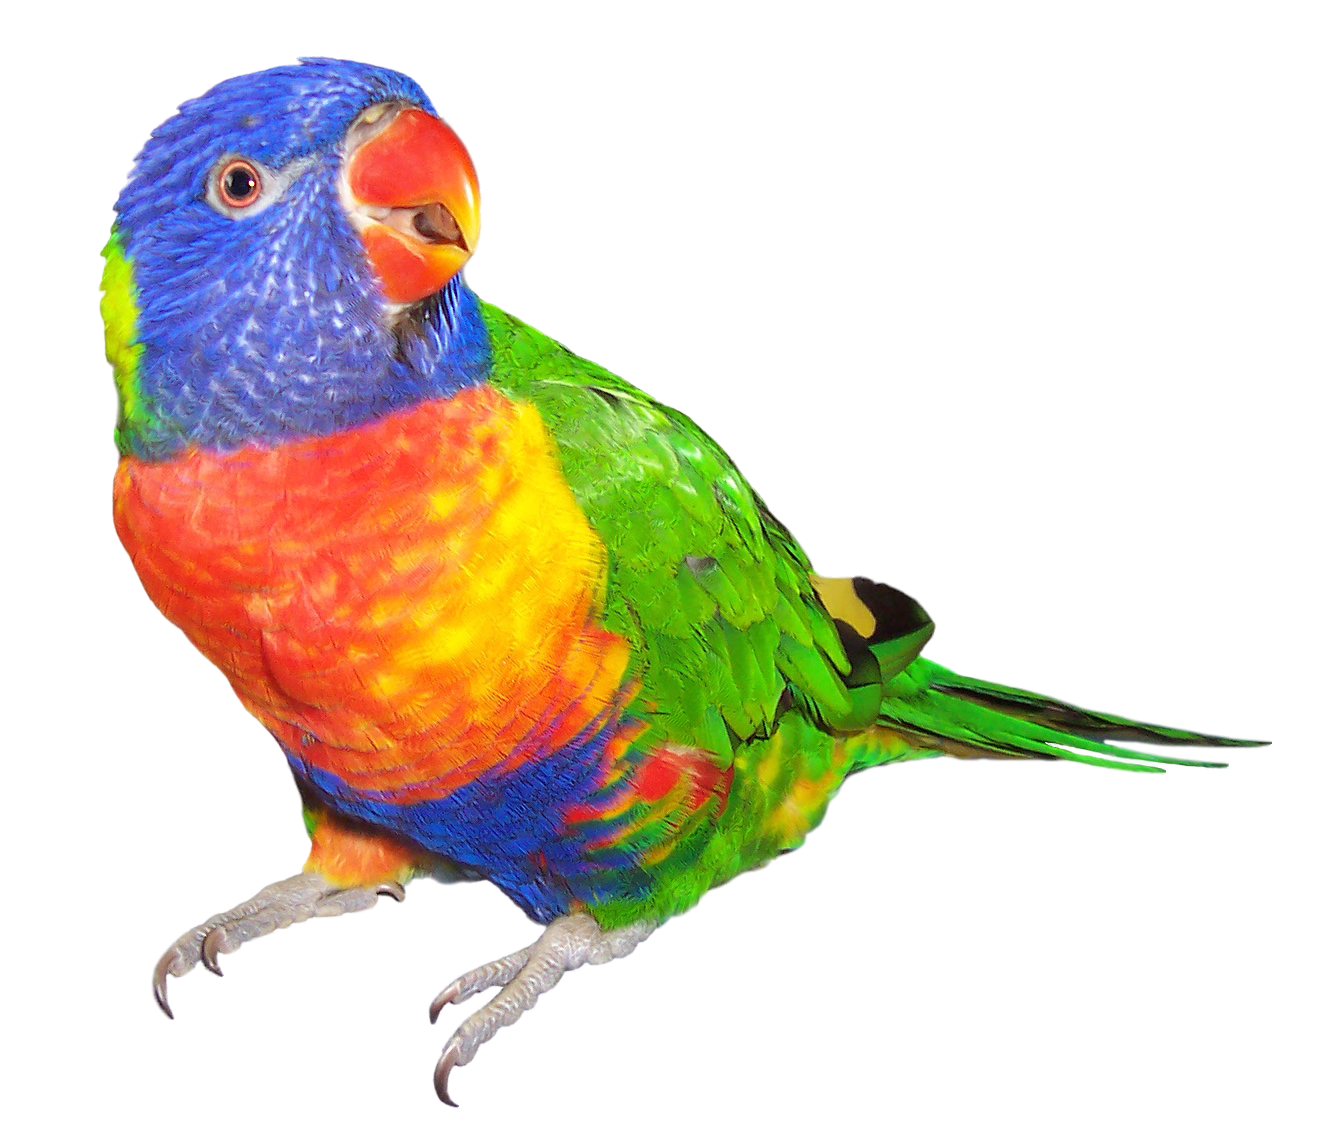 Lorikeet clipart #11, Download drawings